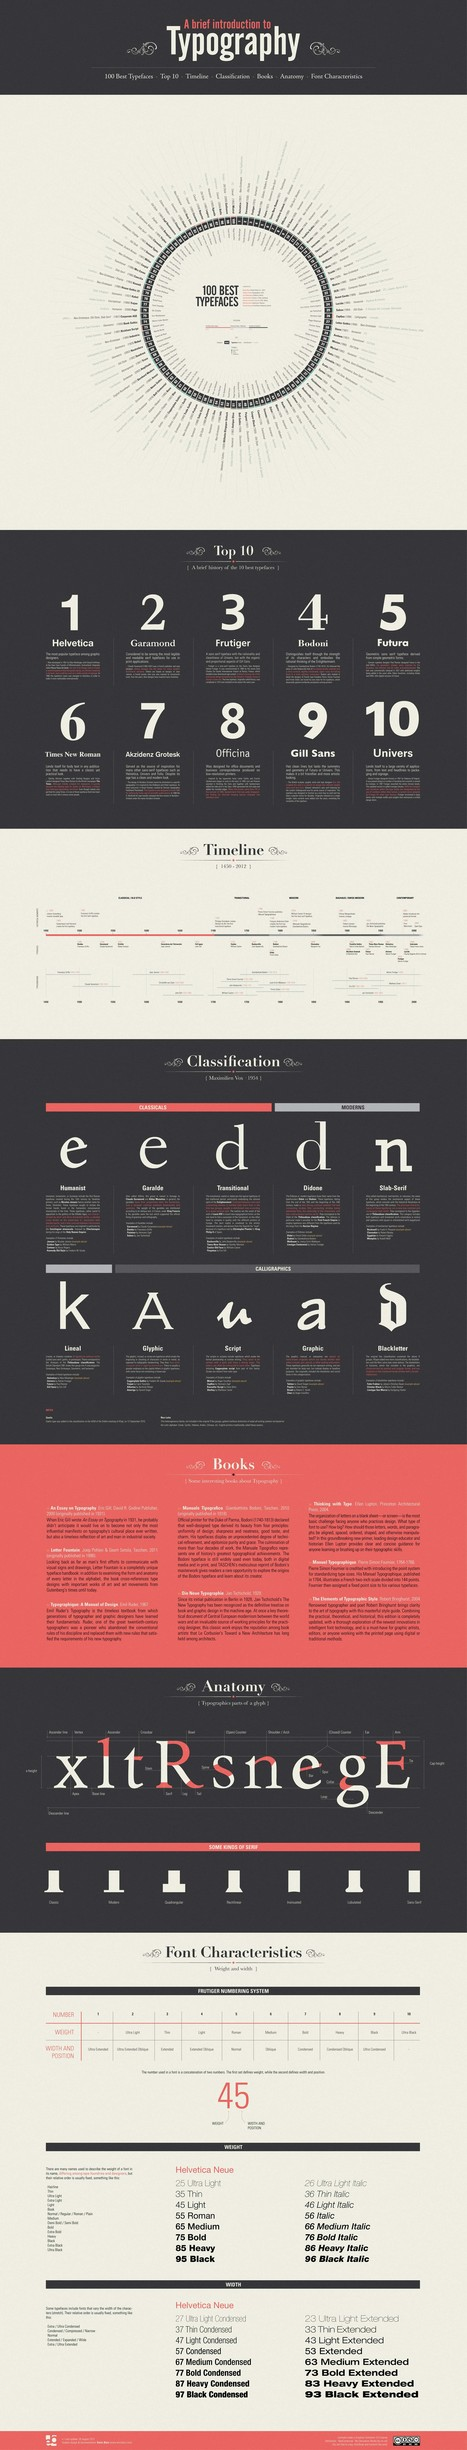 A Brief Introduction to Typography – Infographic | Graphic Design | Scoop.it